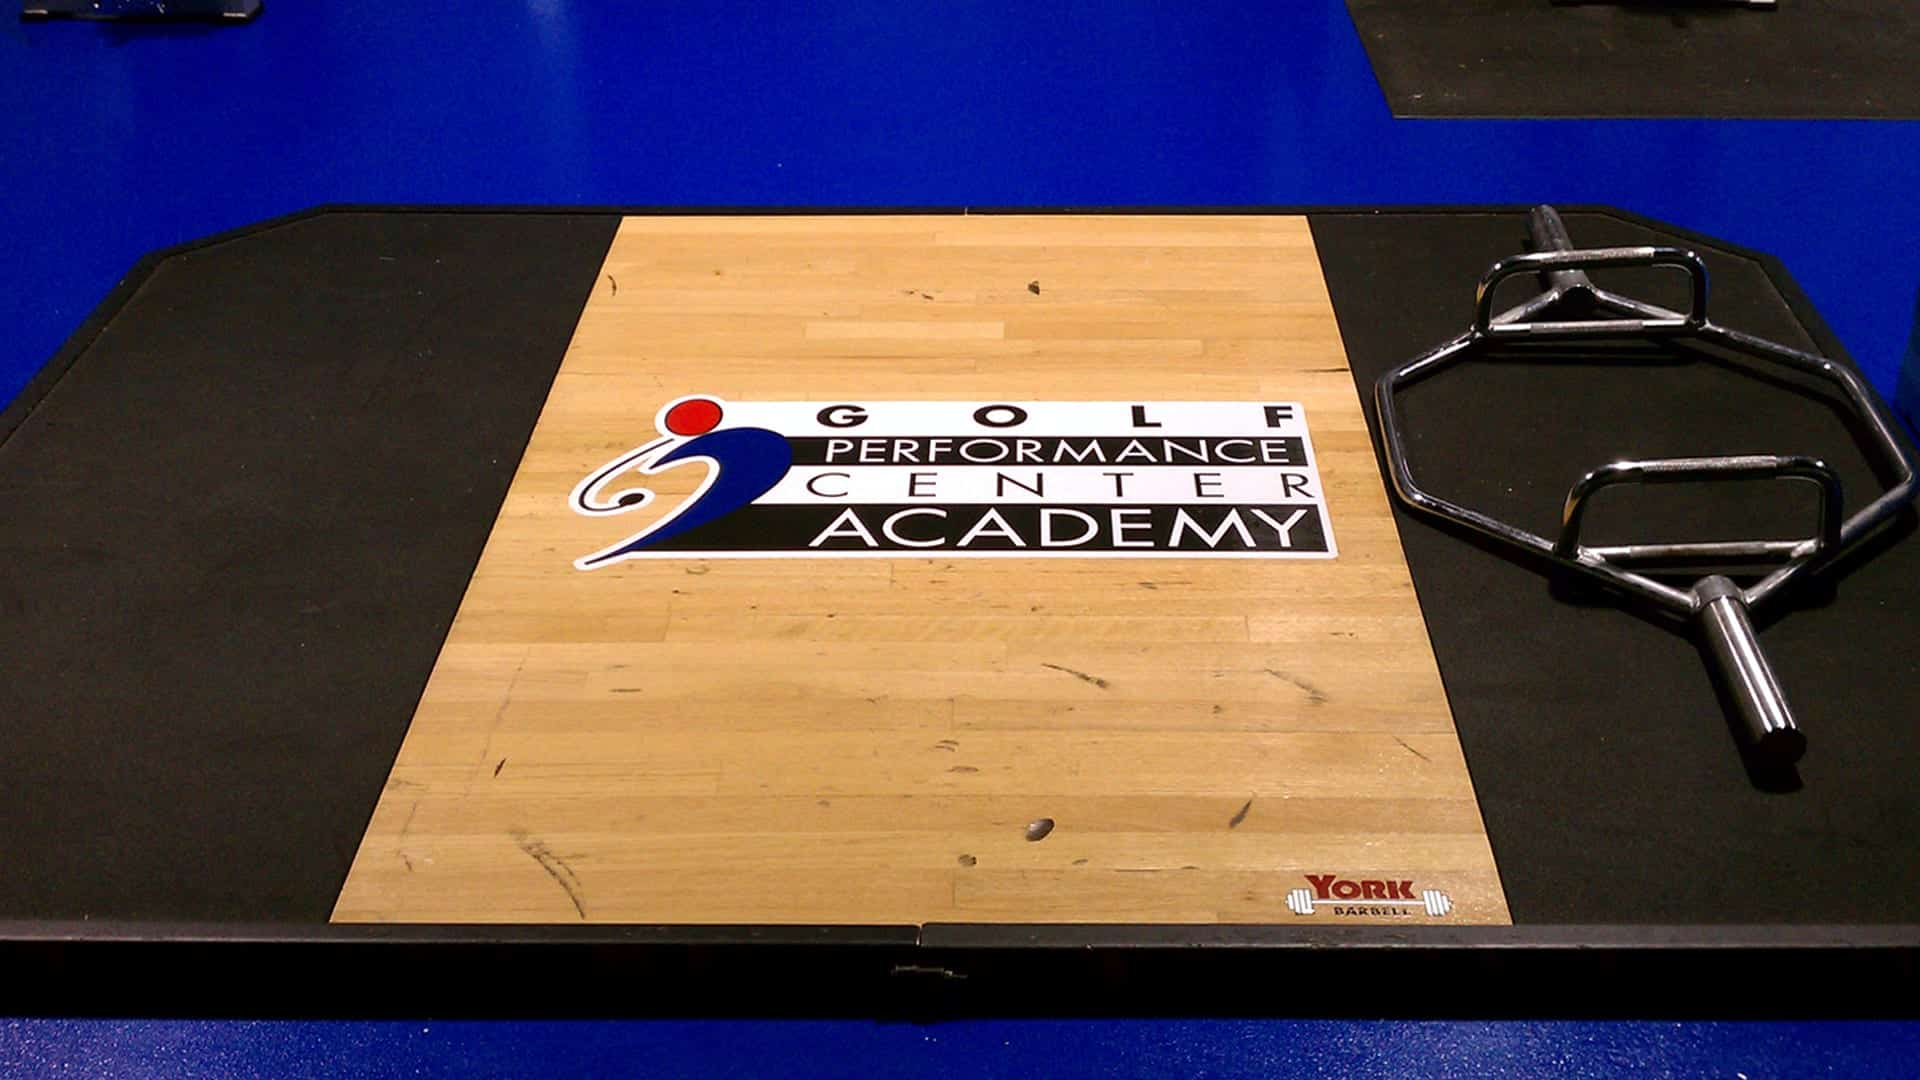 Logo decal on a wooden gym floor